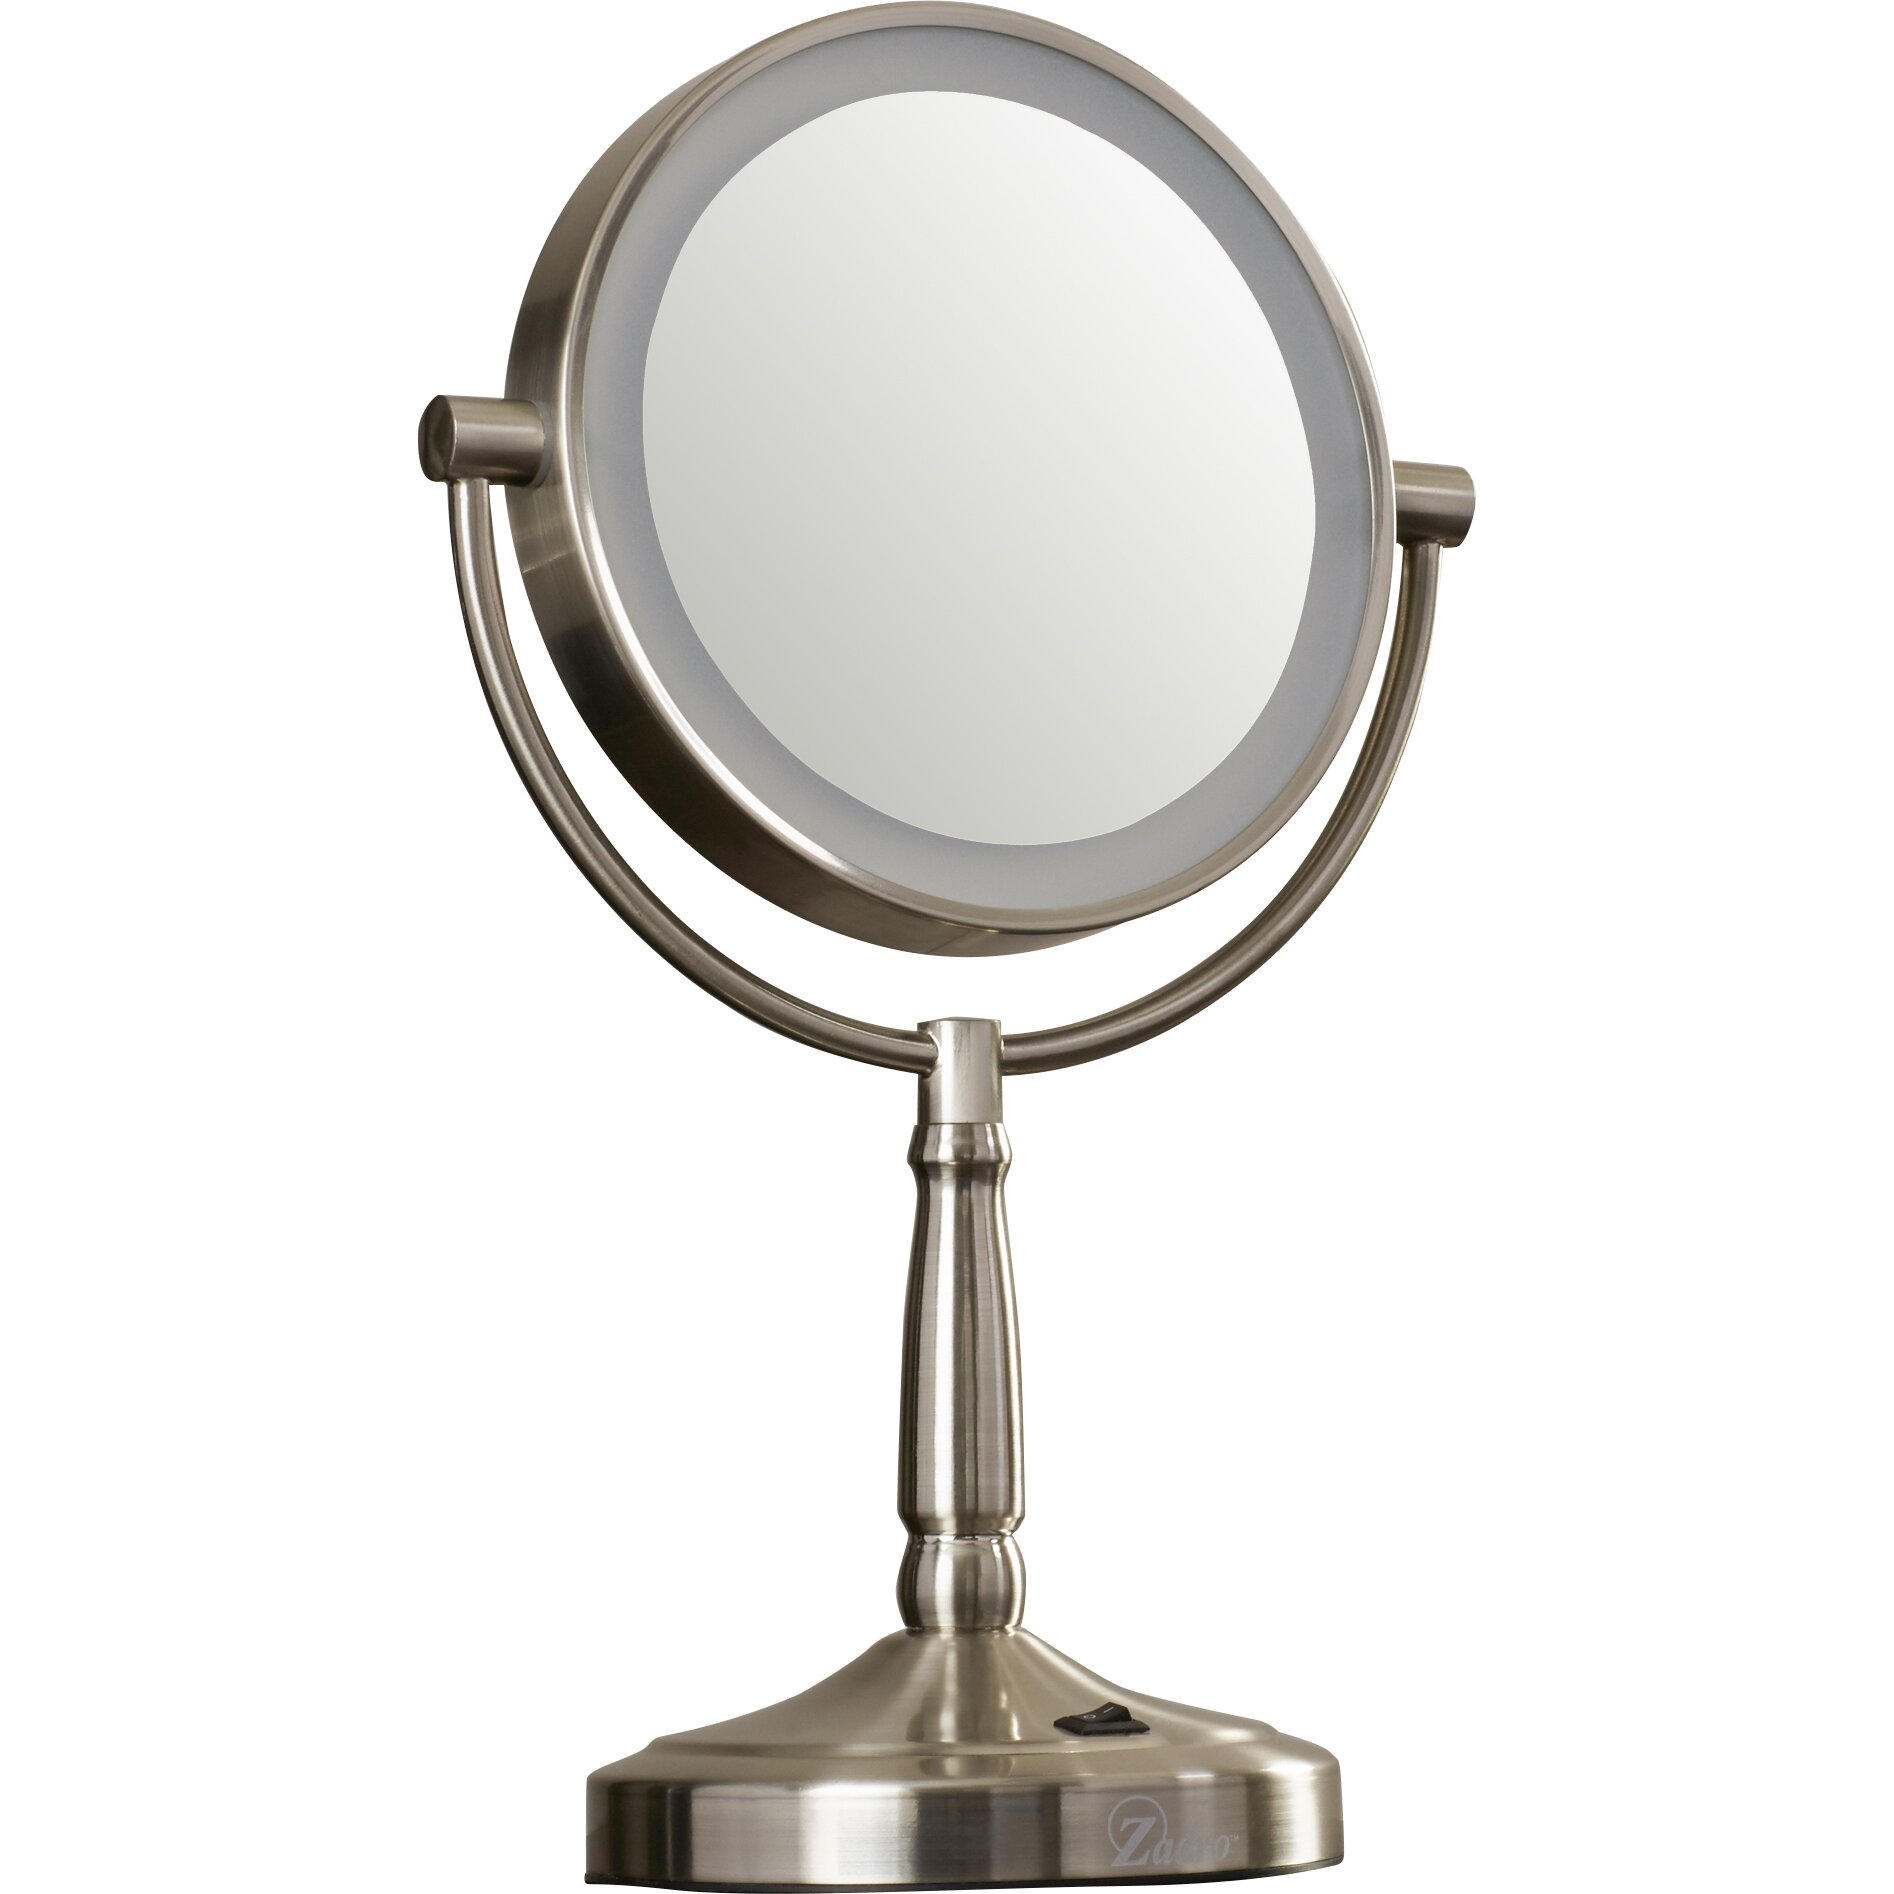 Vanity Mirror With Lights Cordless : Alcott Hill Cordless Dual-Sided LED Lighted Vanity Mirror & Reviews Wayfair.ca